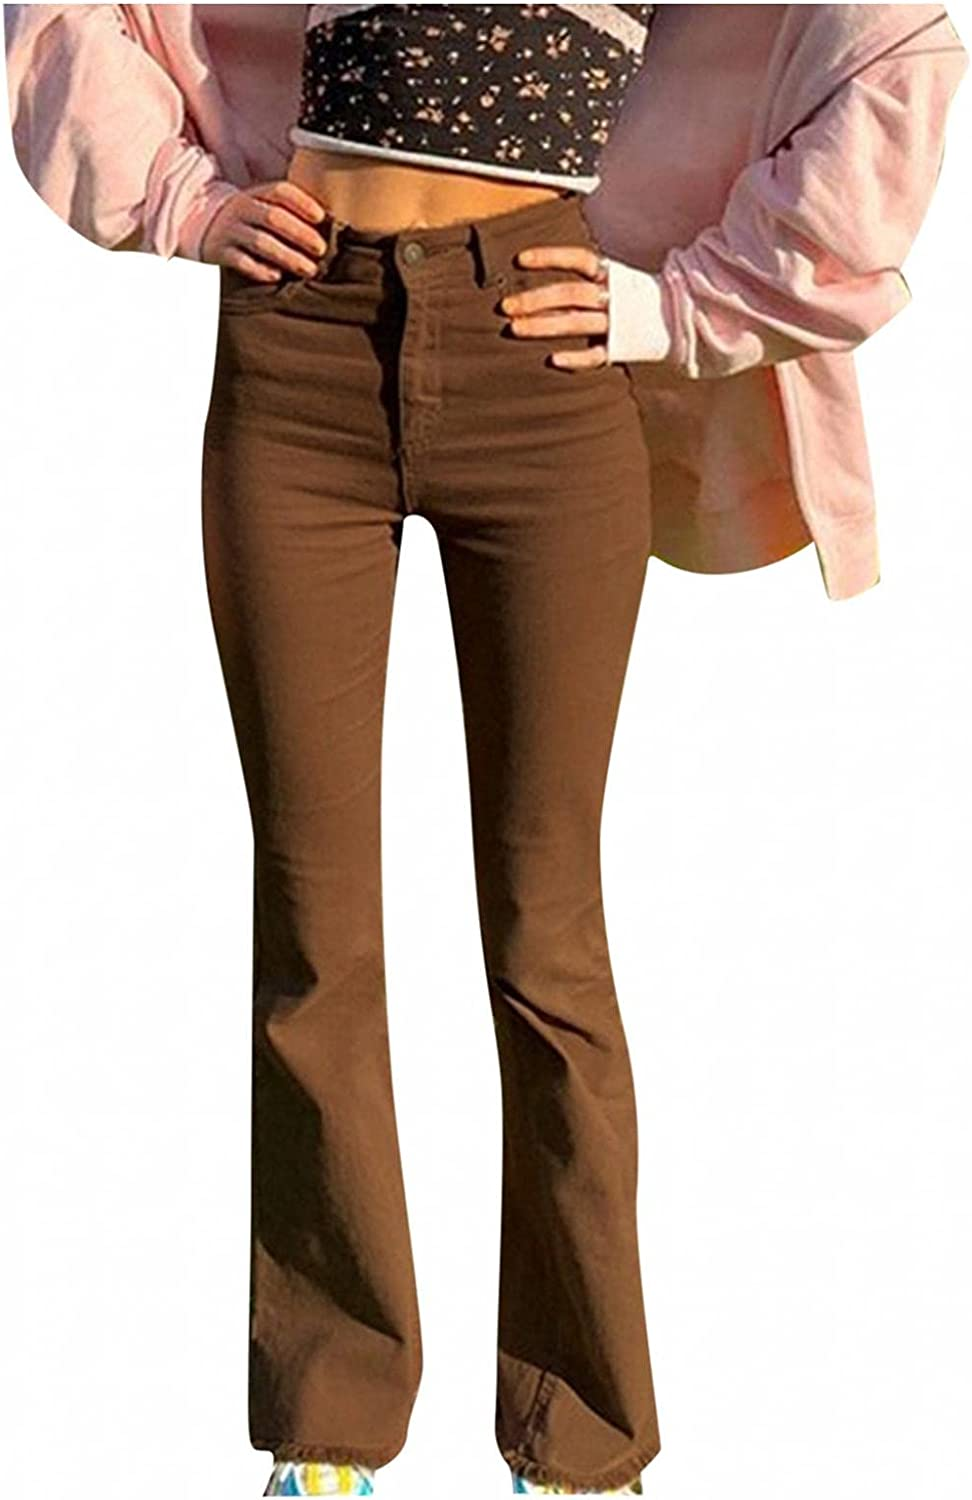 Lingbing Y2K Fashion Jeans for Women, Teen Girls Vintage Brown Pants Slim Fit Flared Trousers Casual Straight Leg Pants